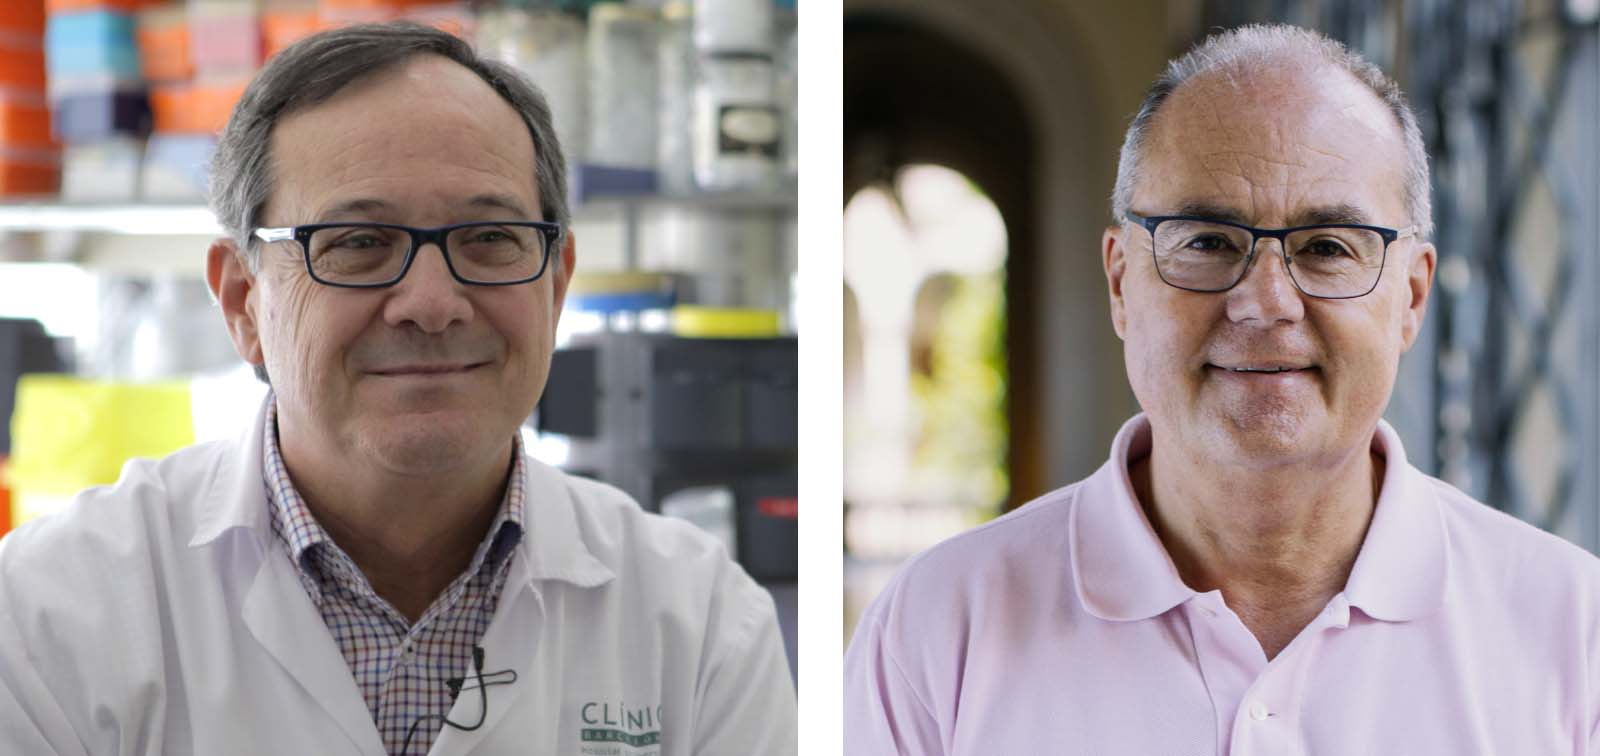 Jordi Vila is the new president of the SEIMC and Antoni Trilla, new dean of the Faculty of Medicine of the University of Barcelona